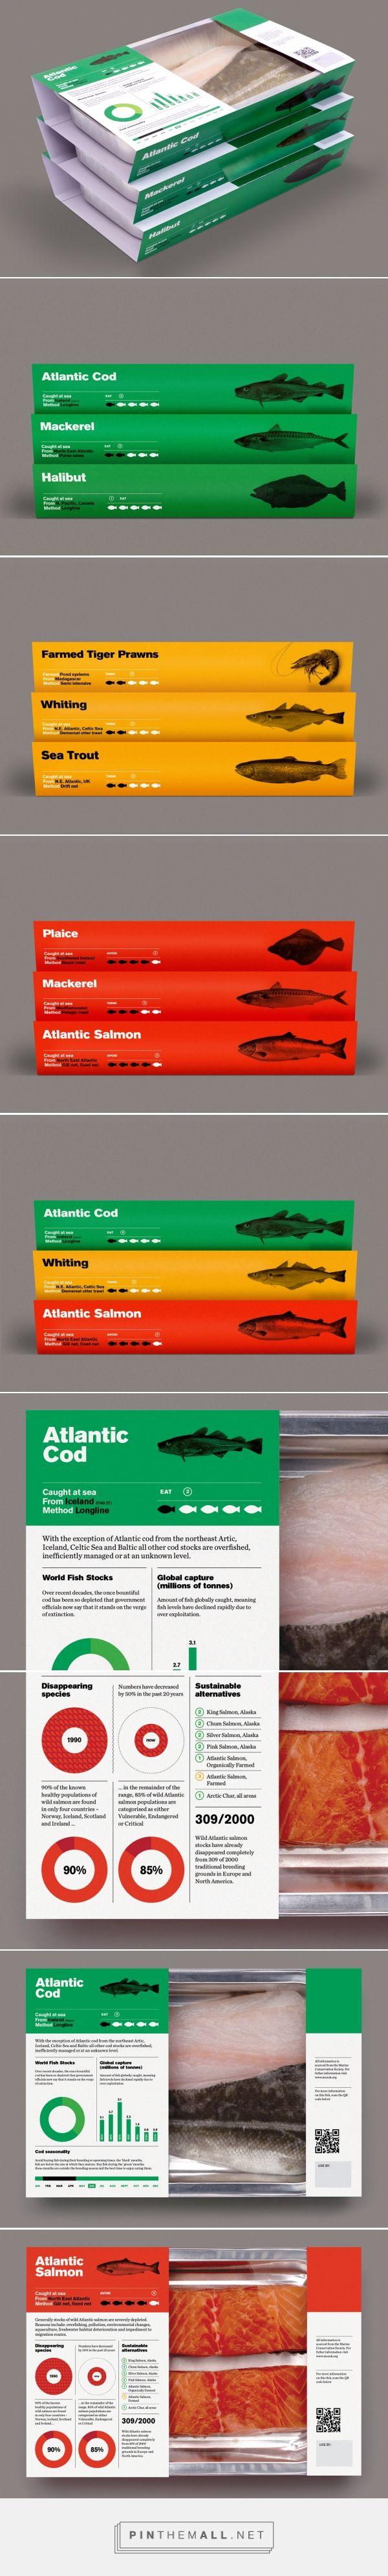 Fish packaging rethink | S-T - created via http://pinthemall.net